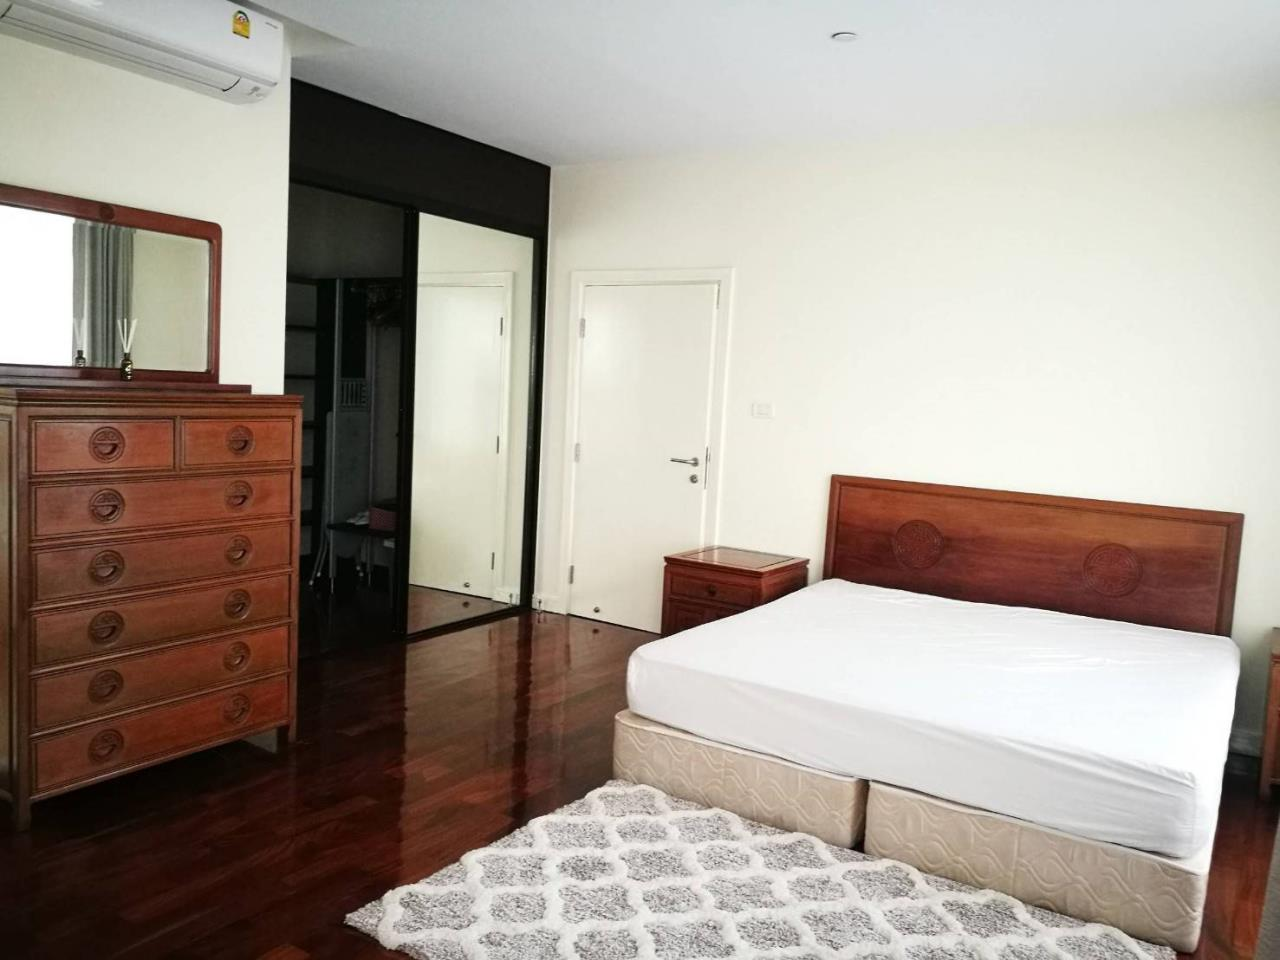 Bestbkkcondos Agency's Wilshire Condo Sukhumvit 22 - 140 SQ.M - for rent: 70,000 THB - 2 bedrooms, 2 bathrooms 13